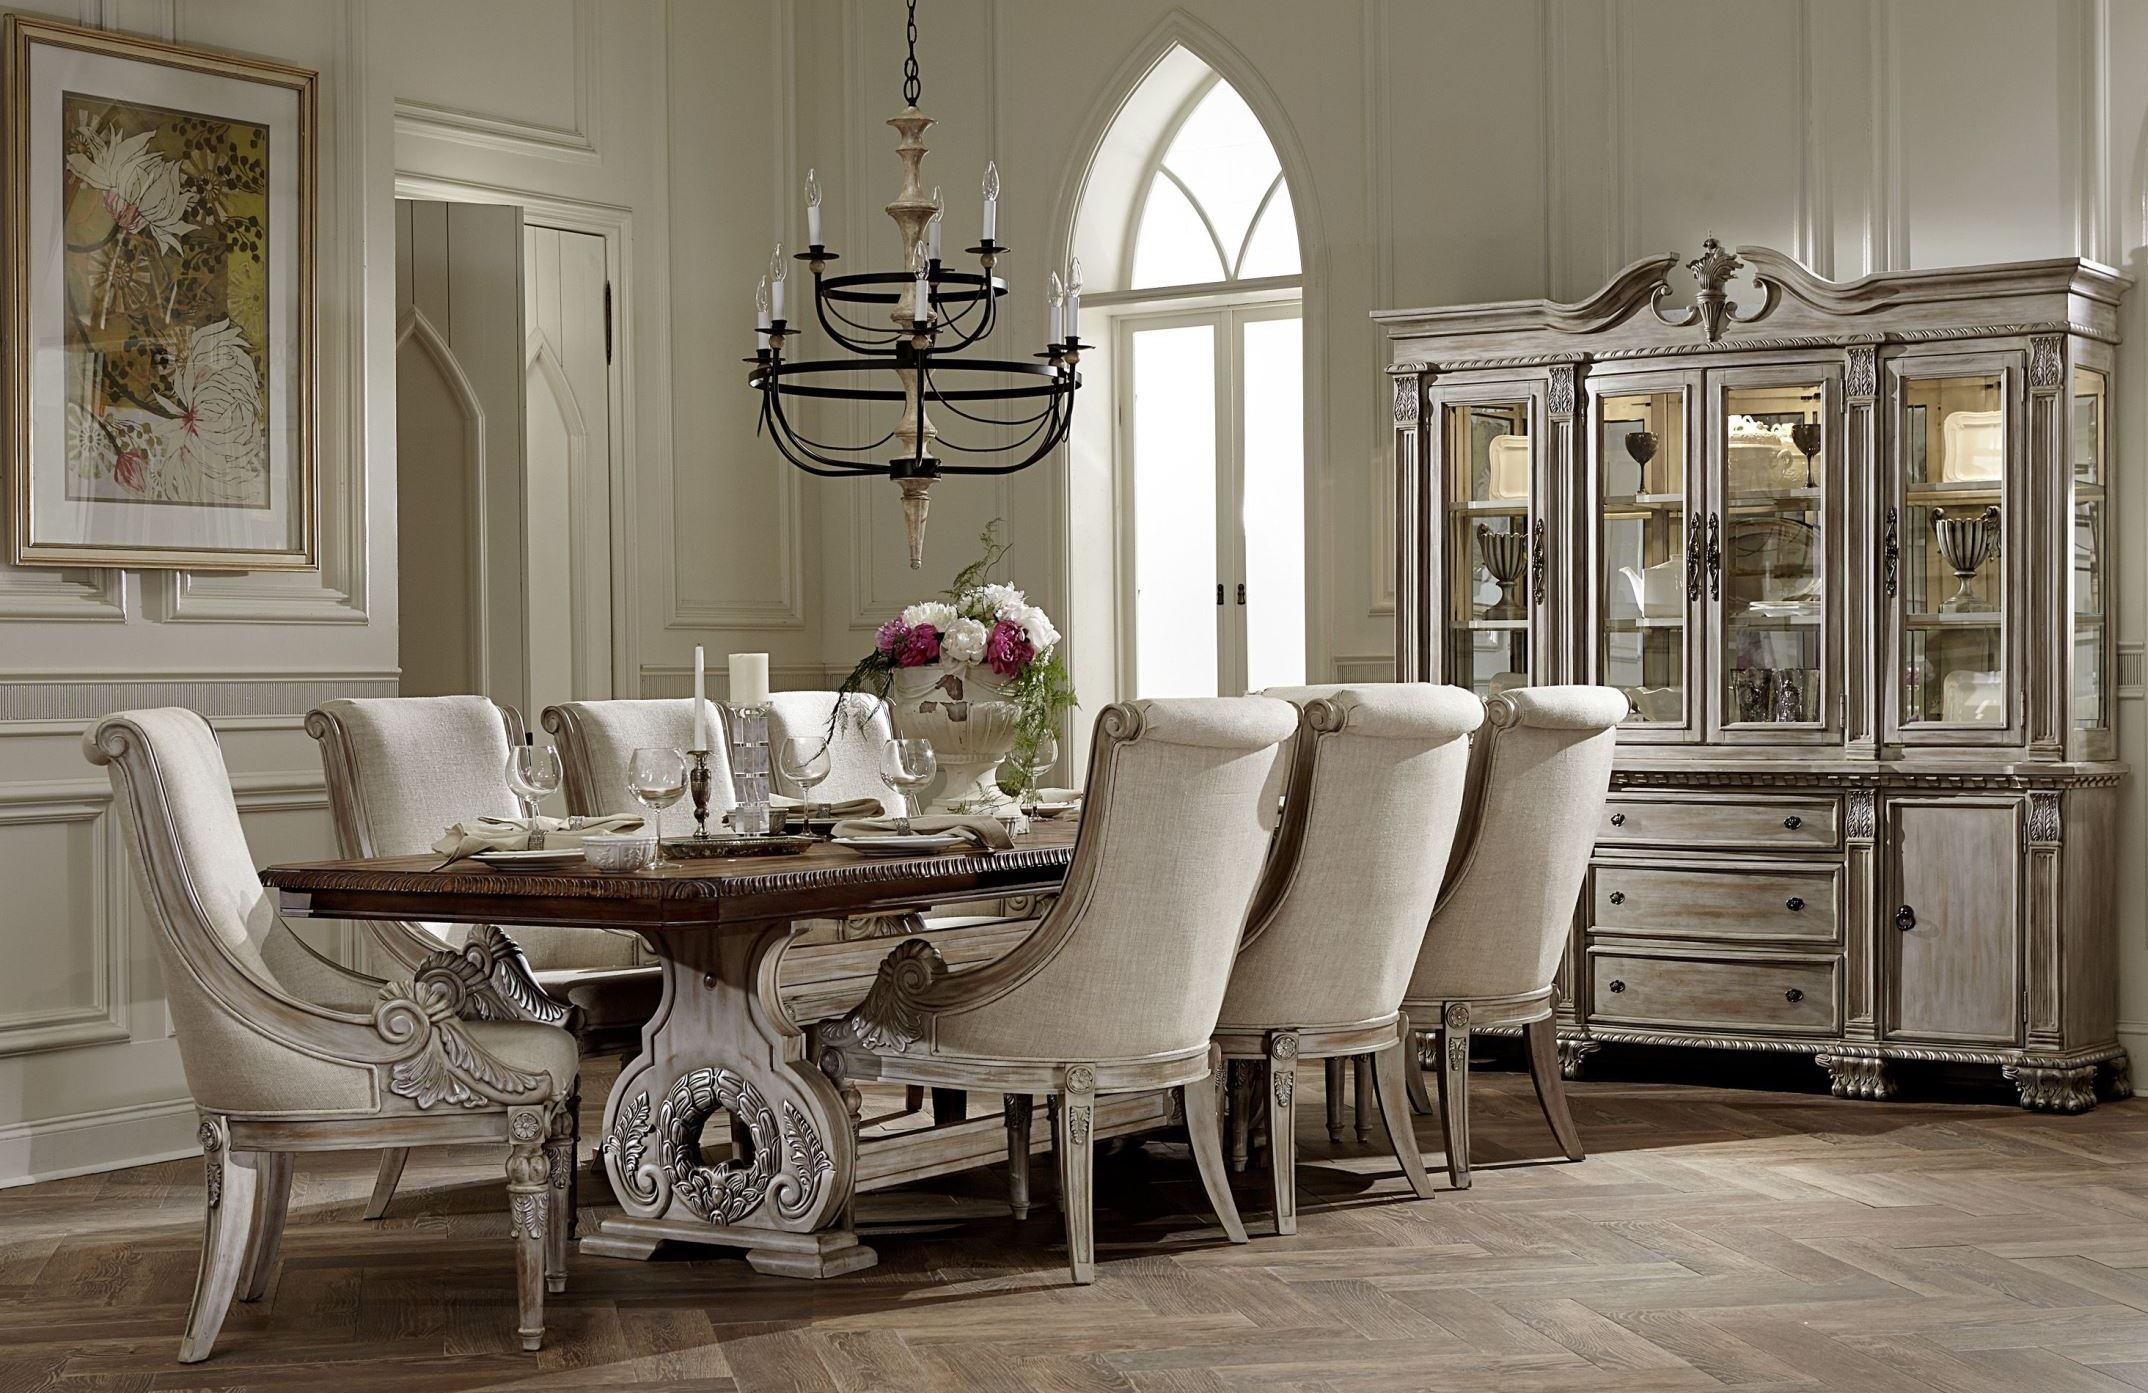 Best Kitchen Gallery: Orleans Ii White Wash Extendable Trestle Dining Room Set From of Dining Room Sets  on rachelxblog.com